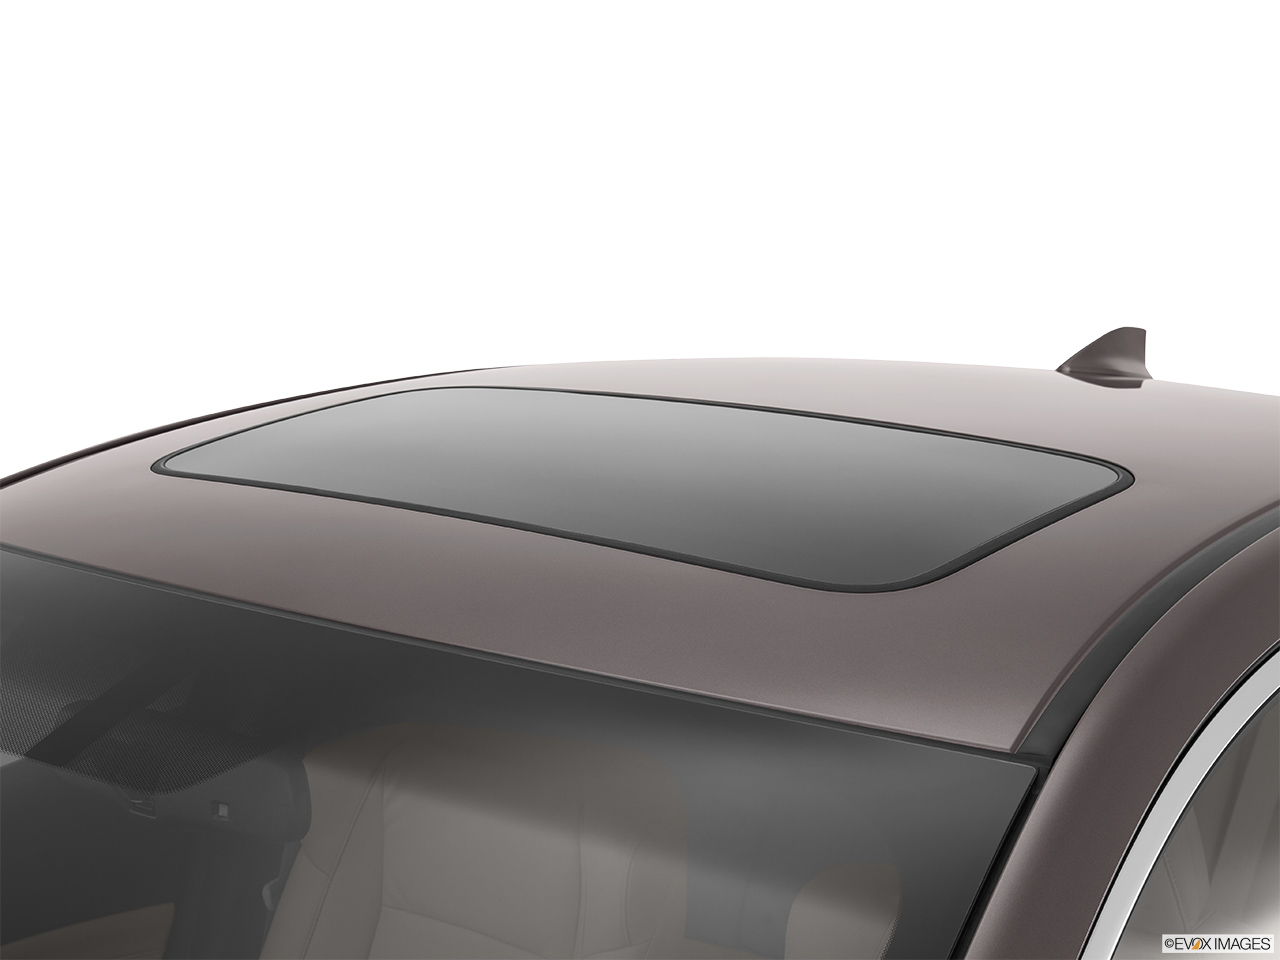 2014 Acura ILX Hybrid Base Sunroof/moonroof.